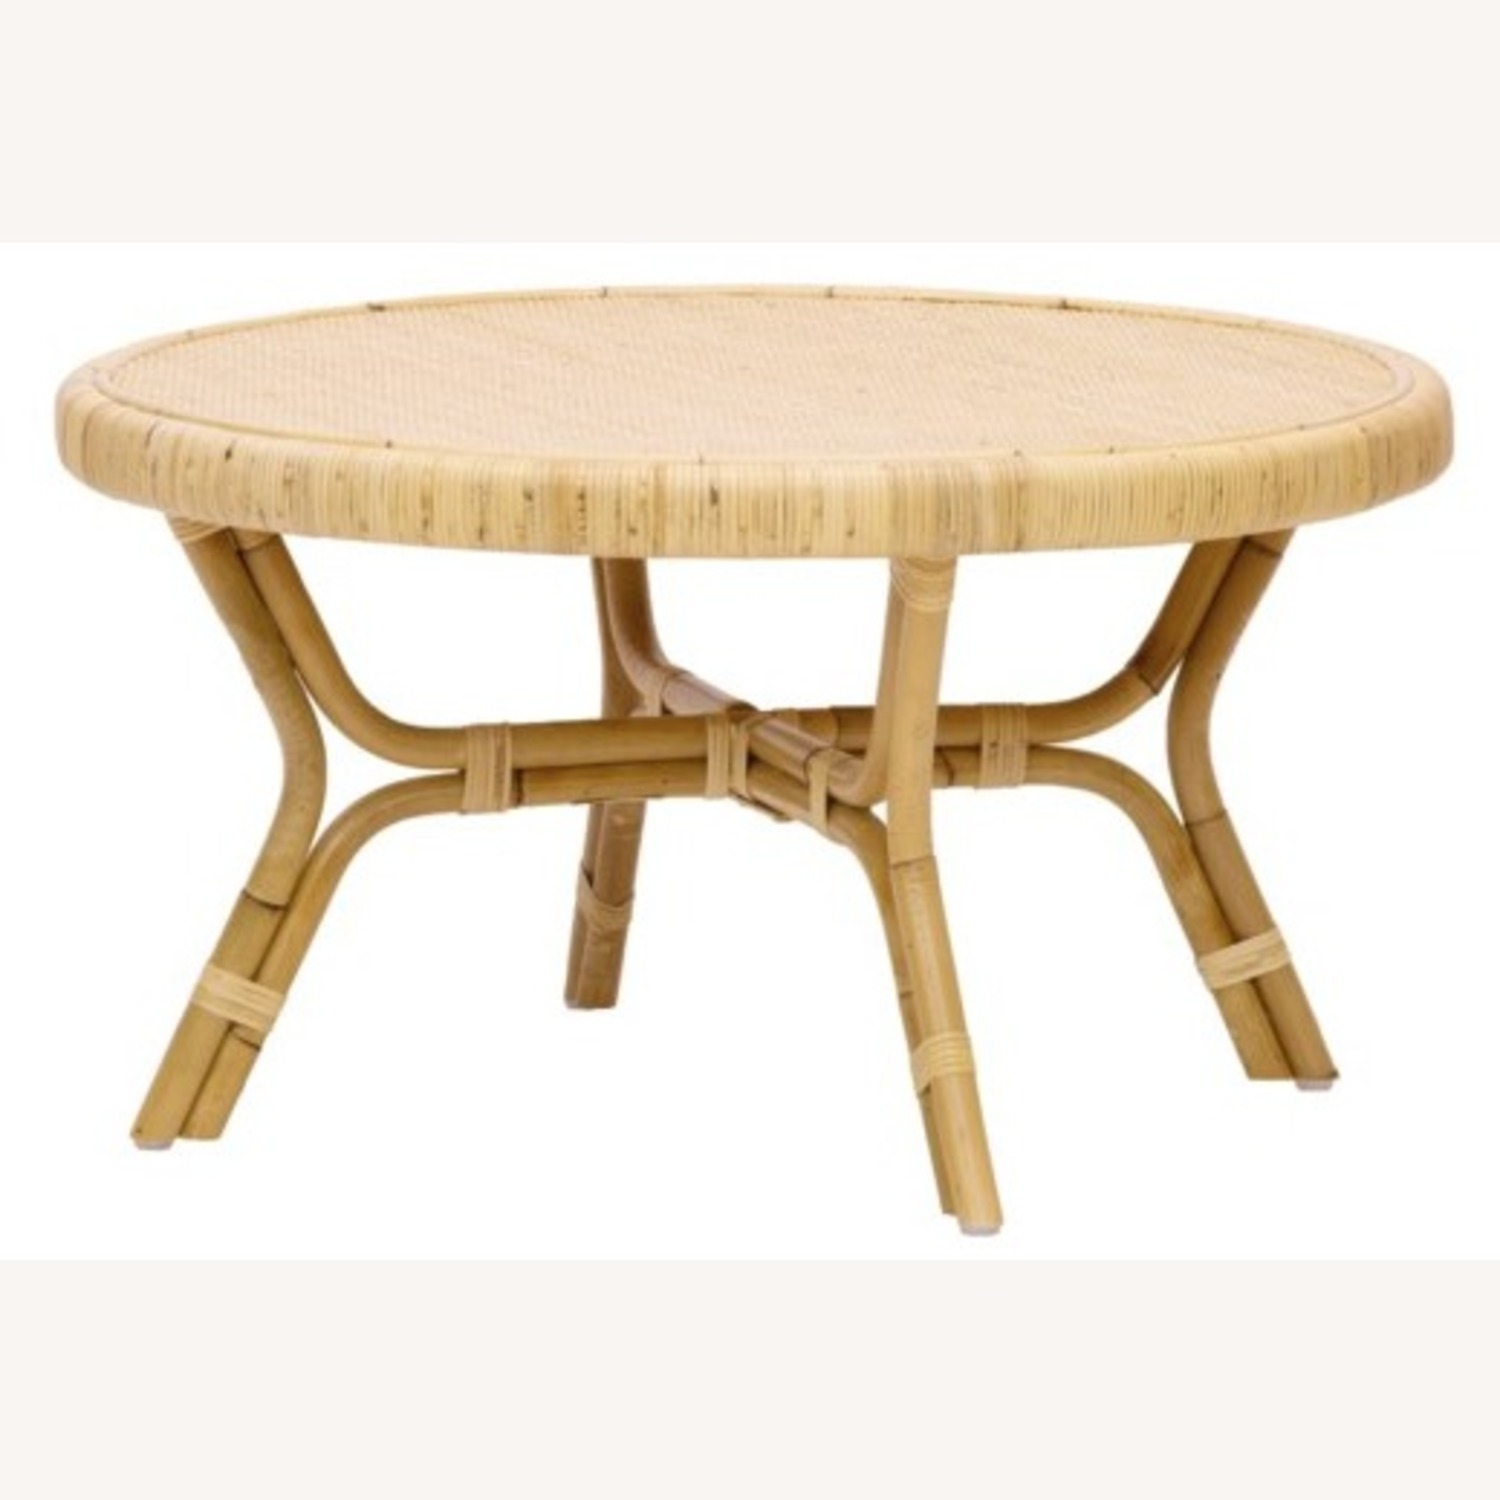 Selamat Designs Tadar Coffee Table + Libra Side Table - image-1